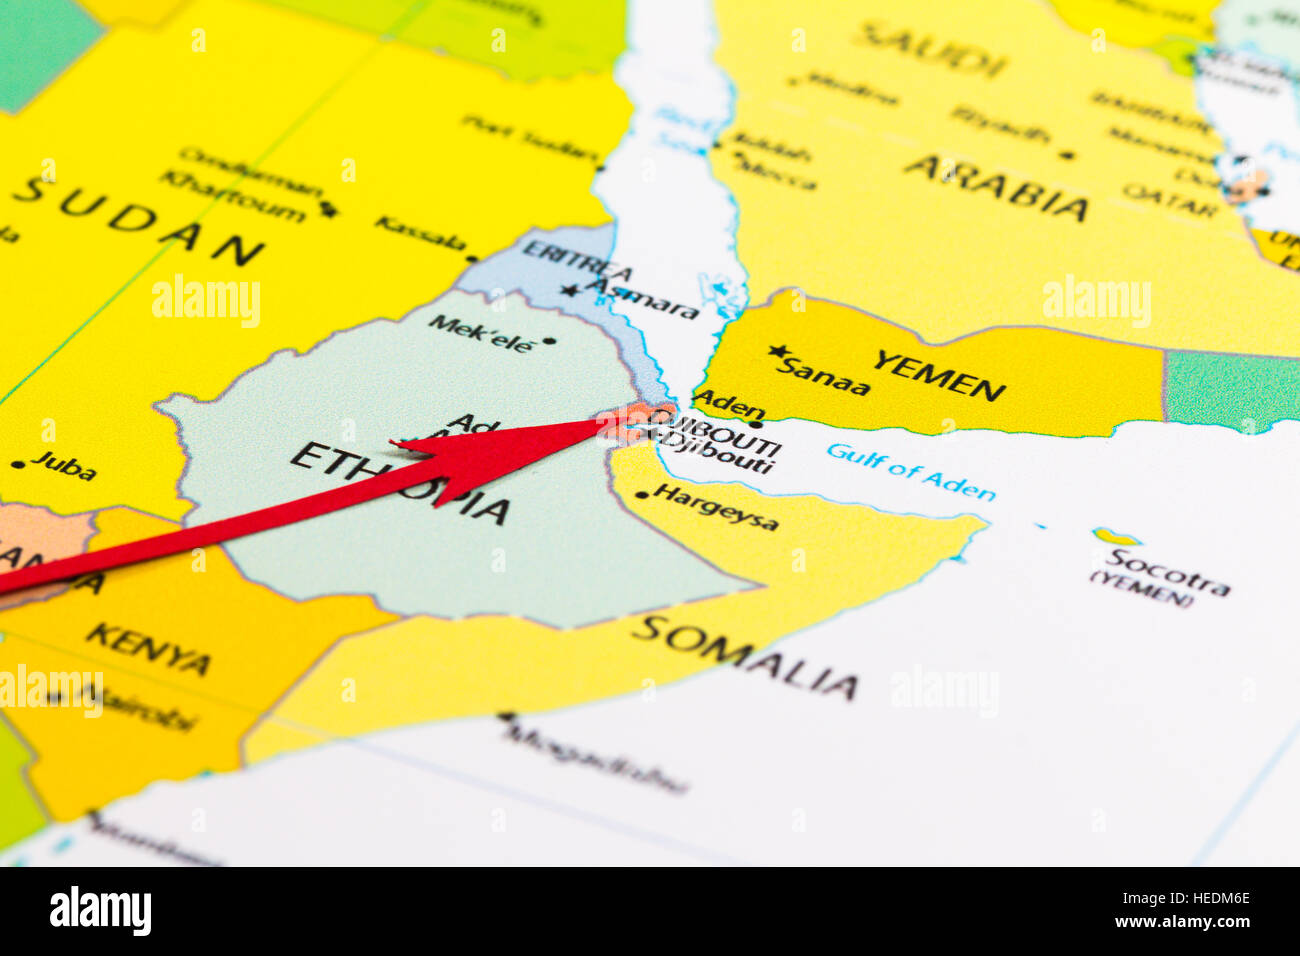 Djibouti On Africa Map.Red Arrow Pointing Djibouti On The Map Of Africa Continent Stock